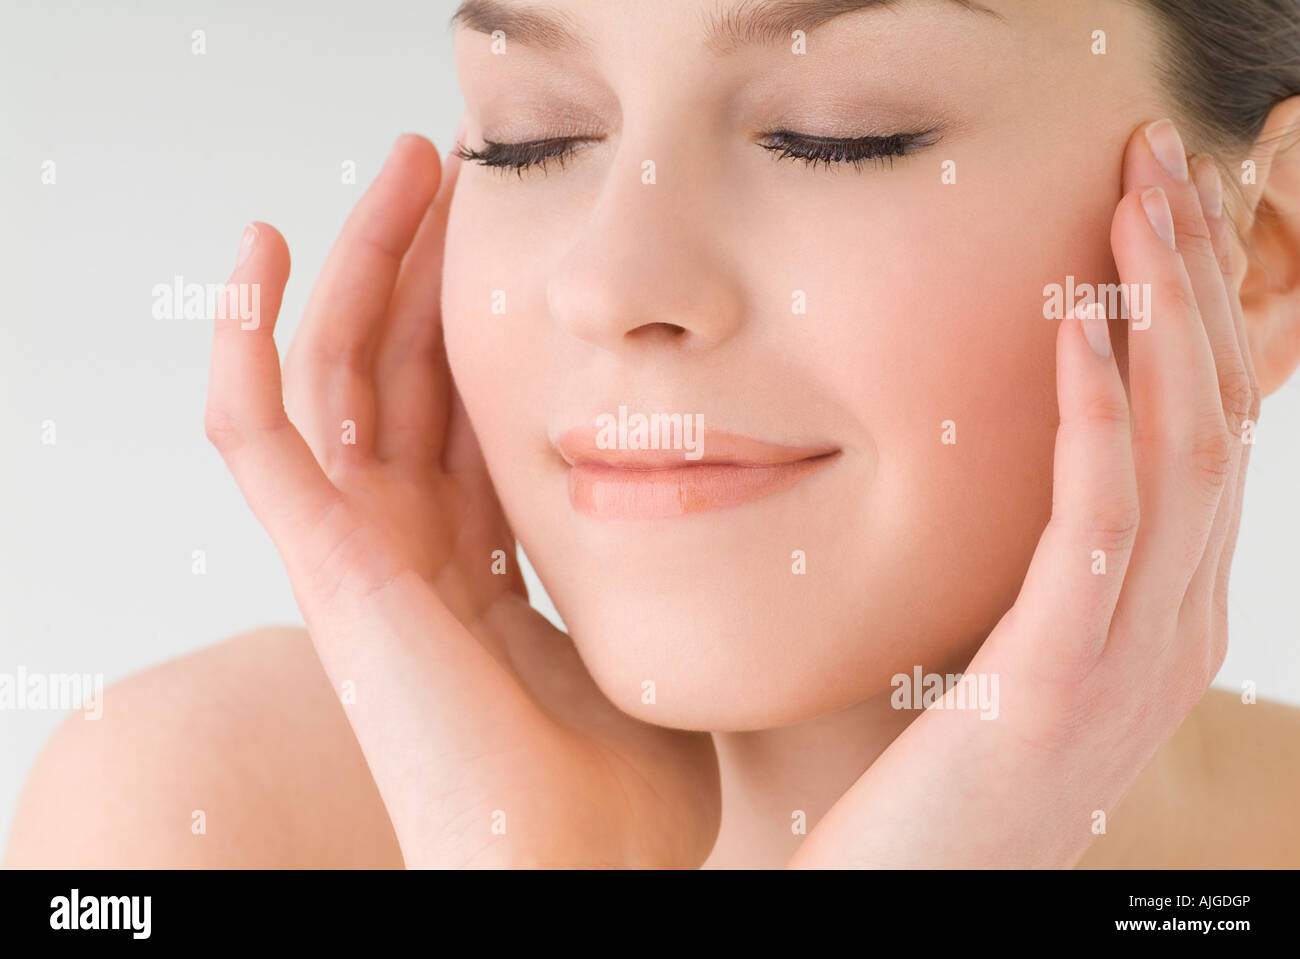 Young woman touching her cheeks - Stock Image